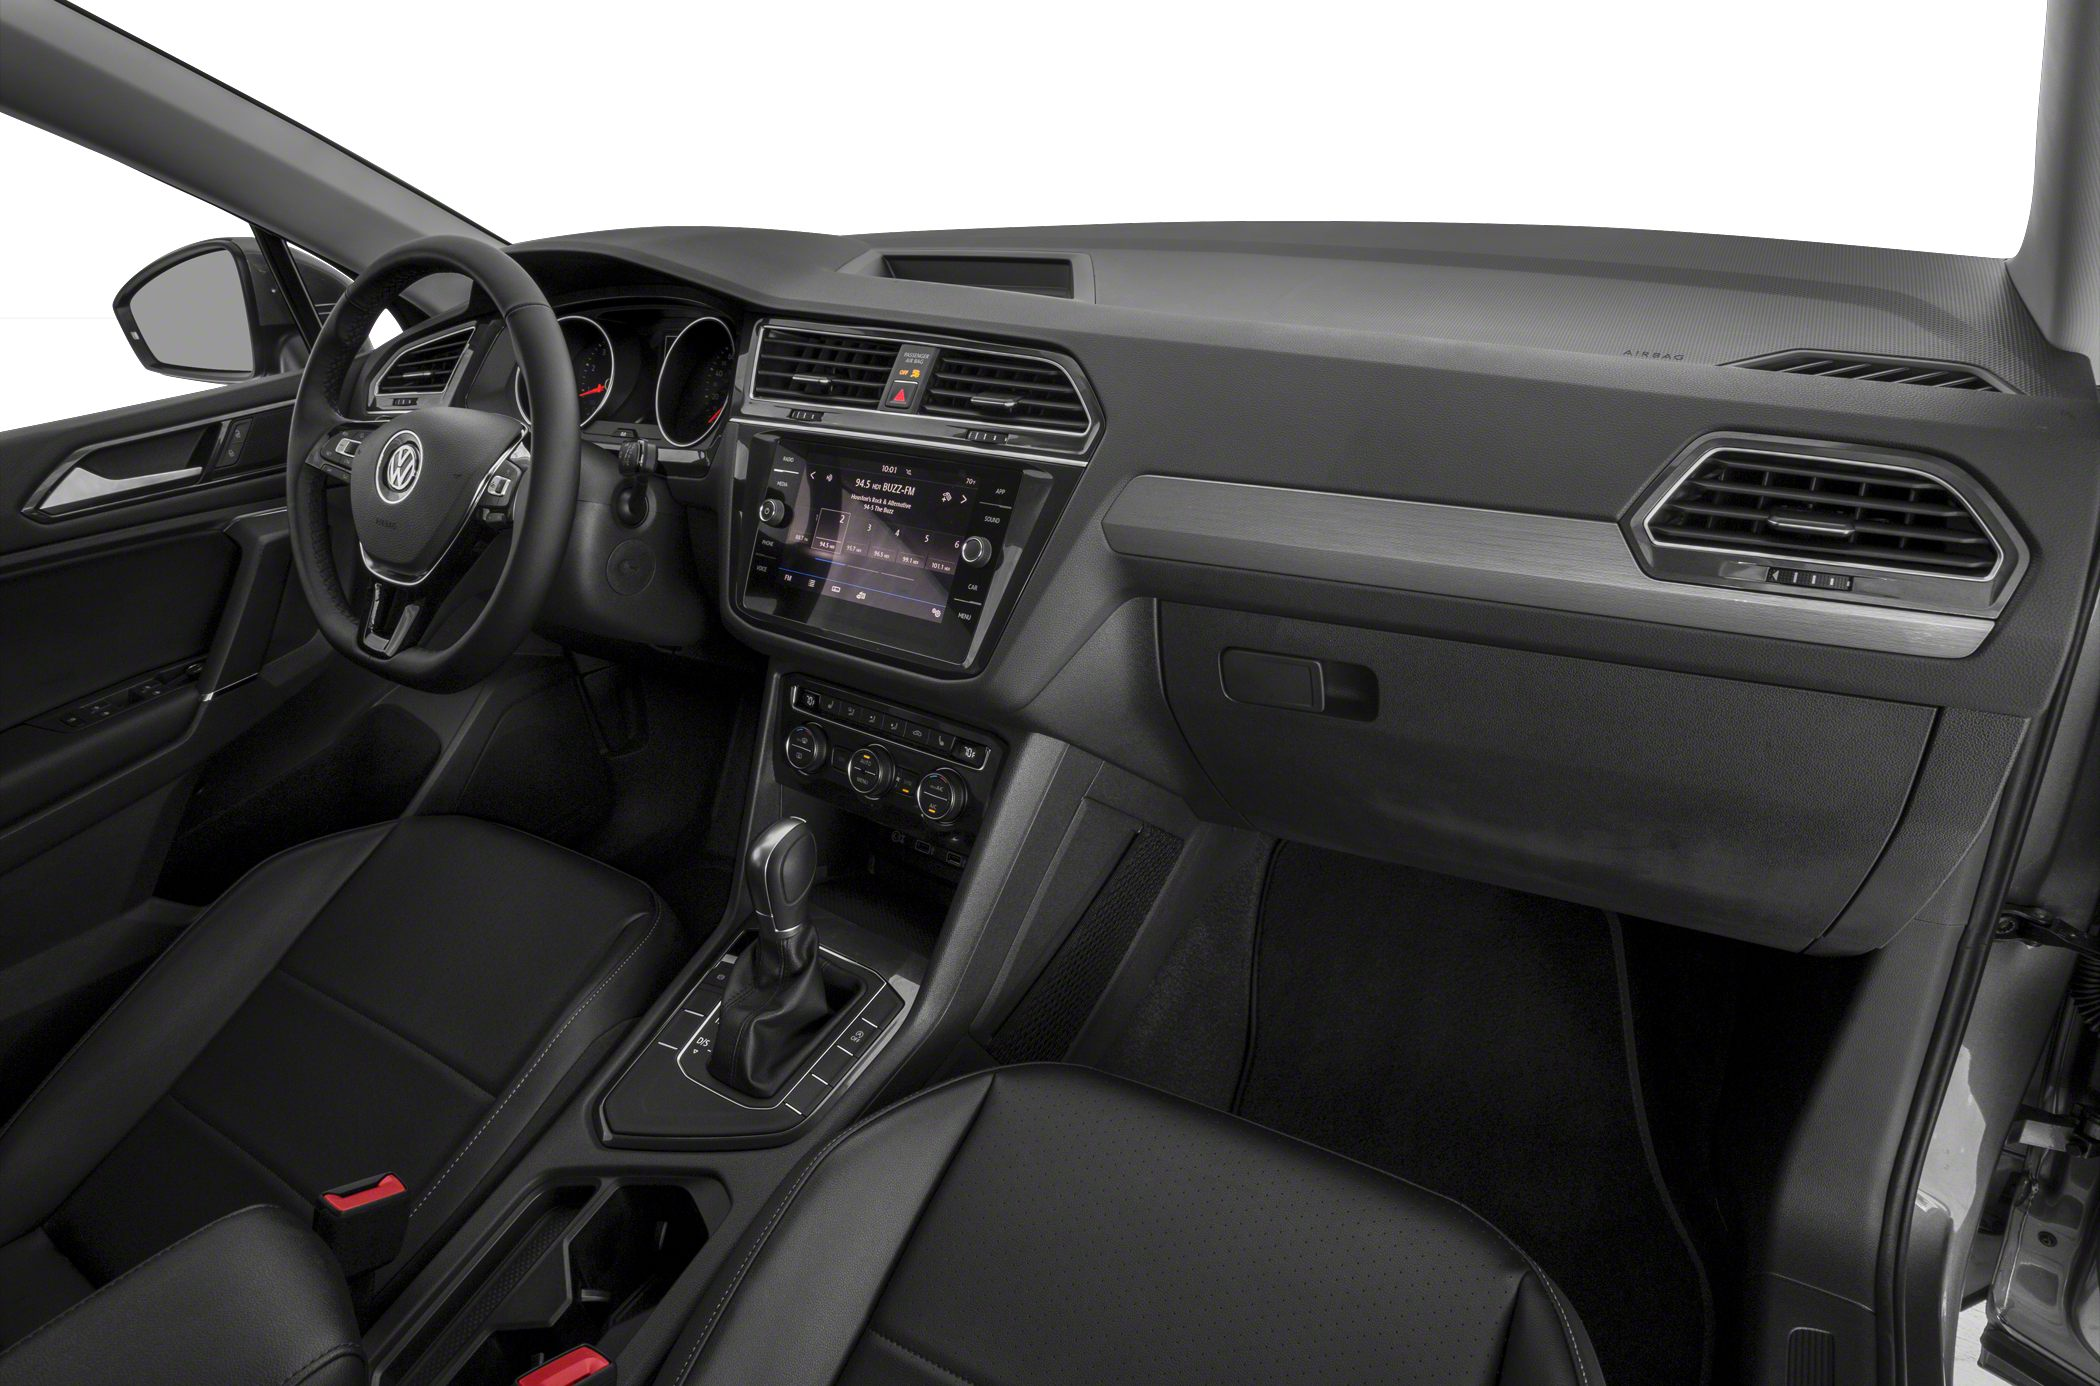 2019 Volkswagen Tiguan Deals, Prices, Incentives & Leases, Overview - CarsDirect